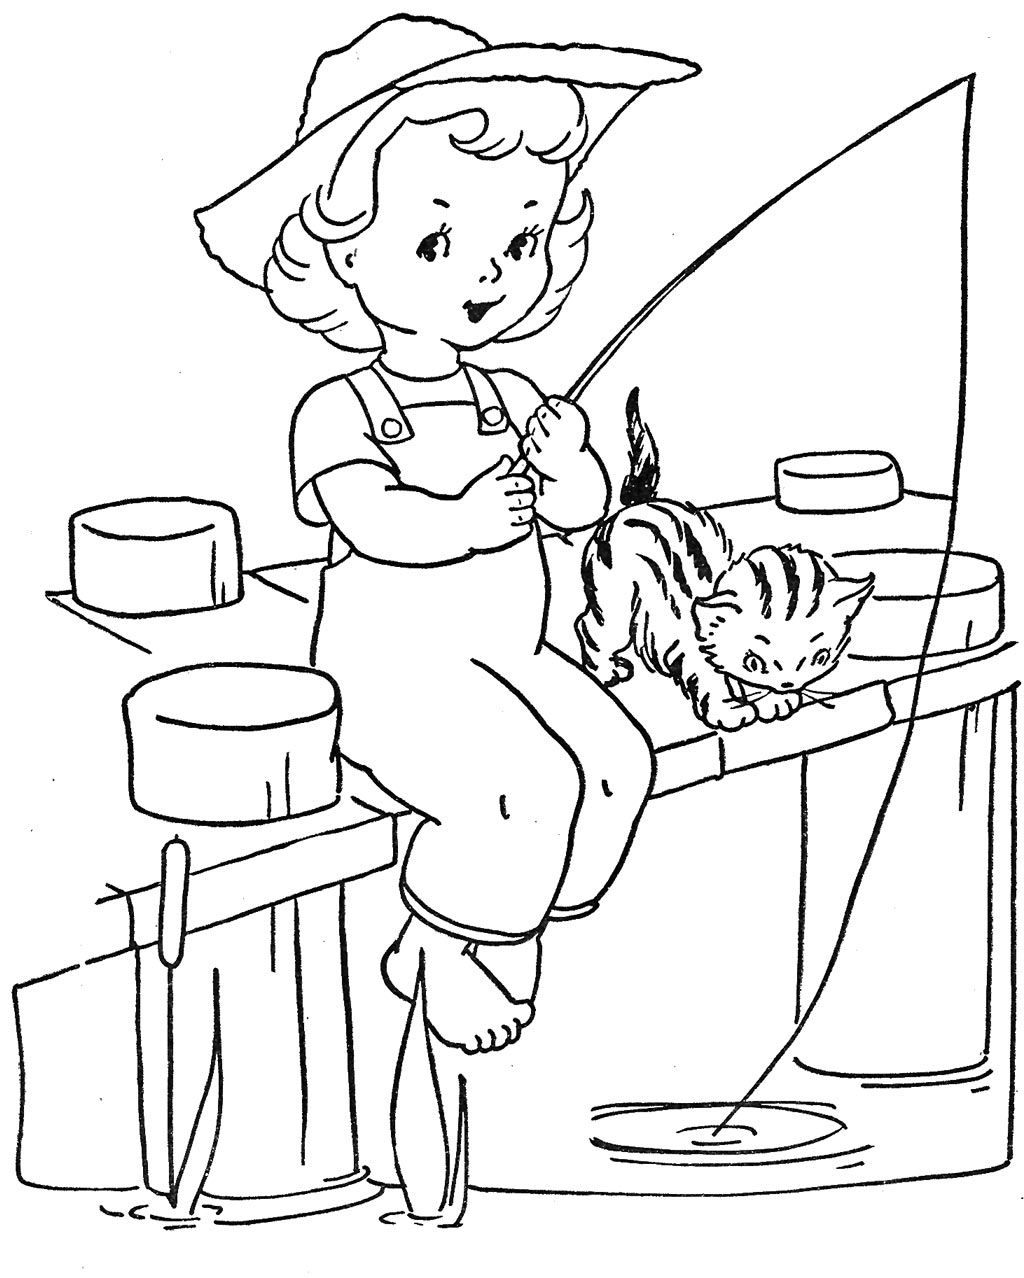 little girl fishing coloring pages google search - Fish Coloring Pages 2